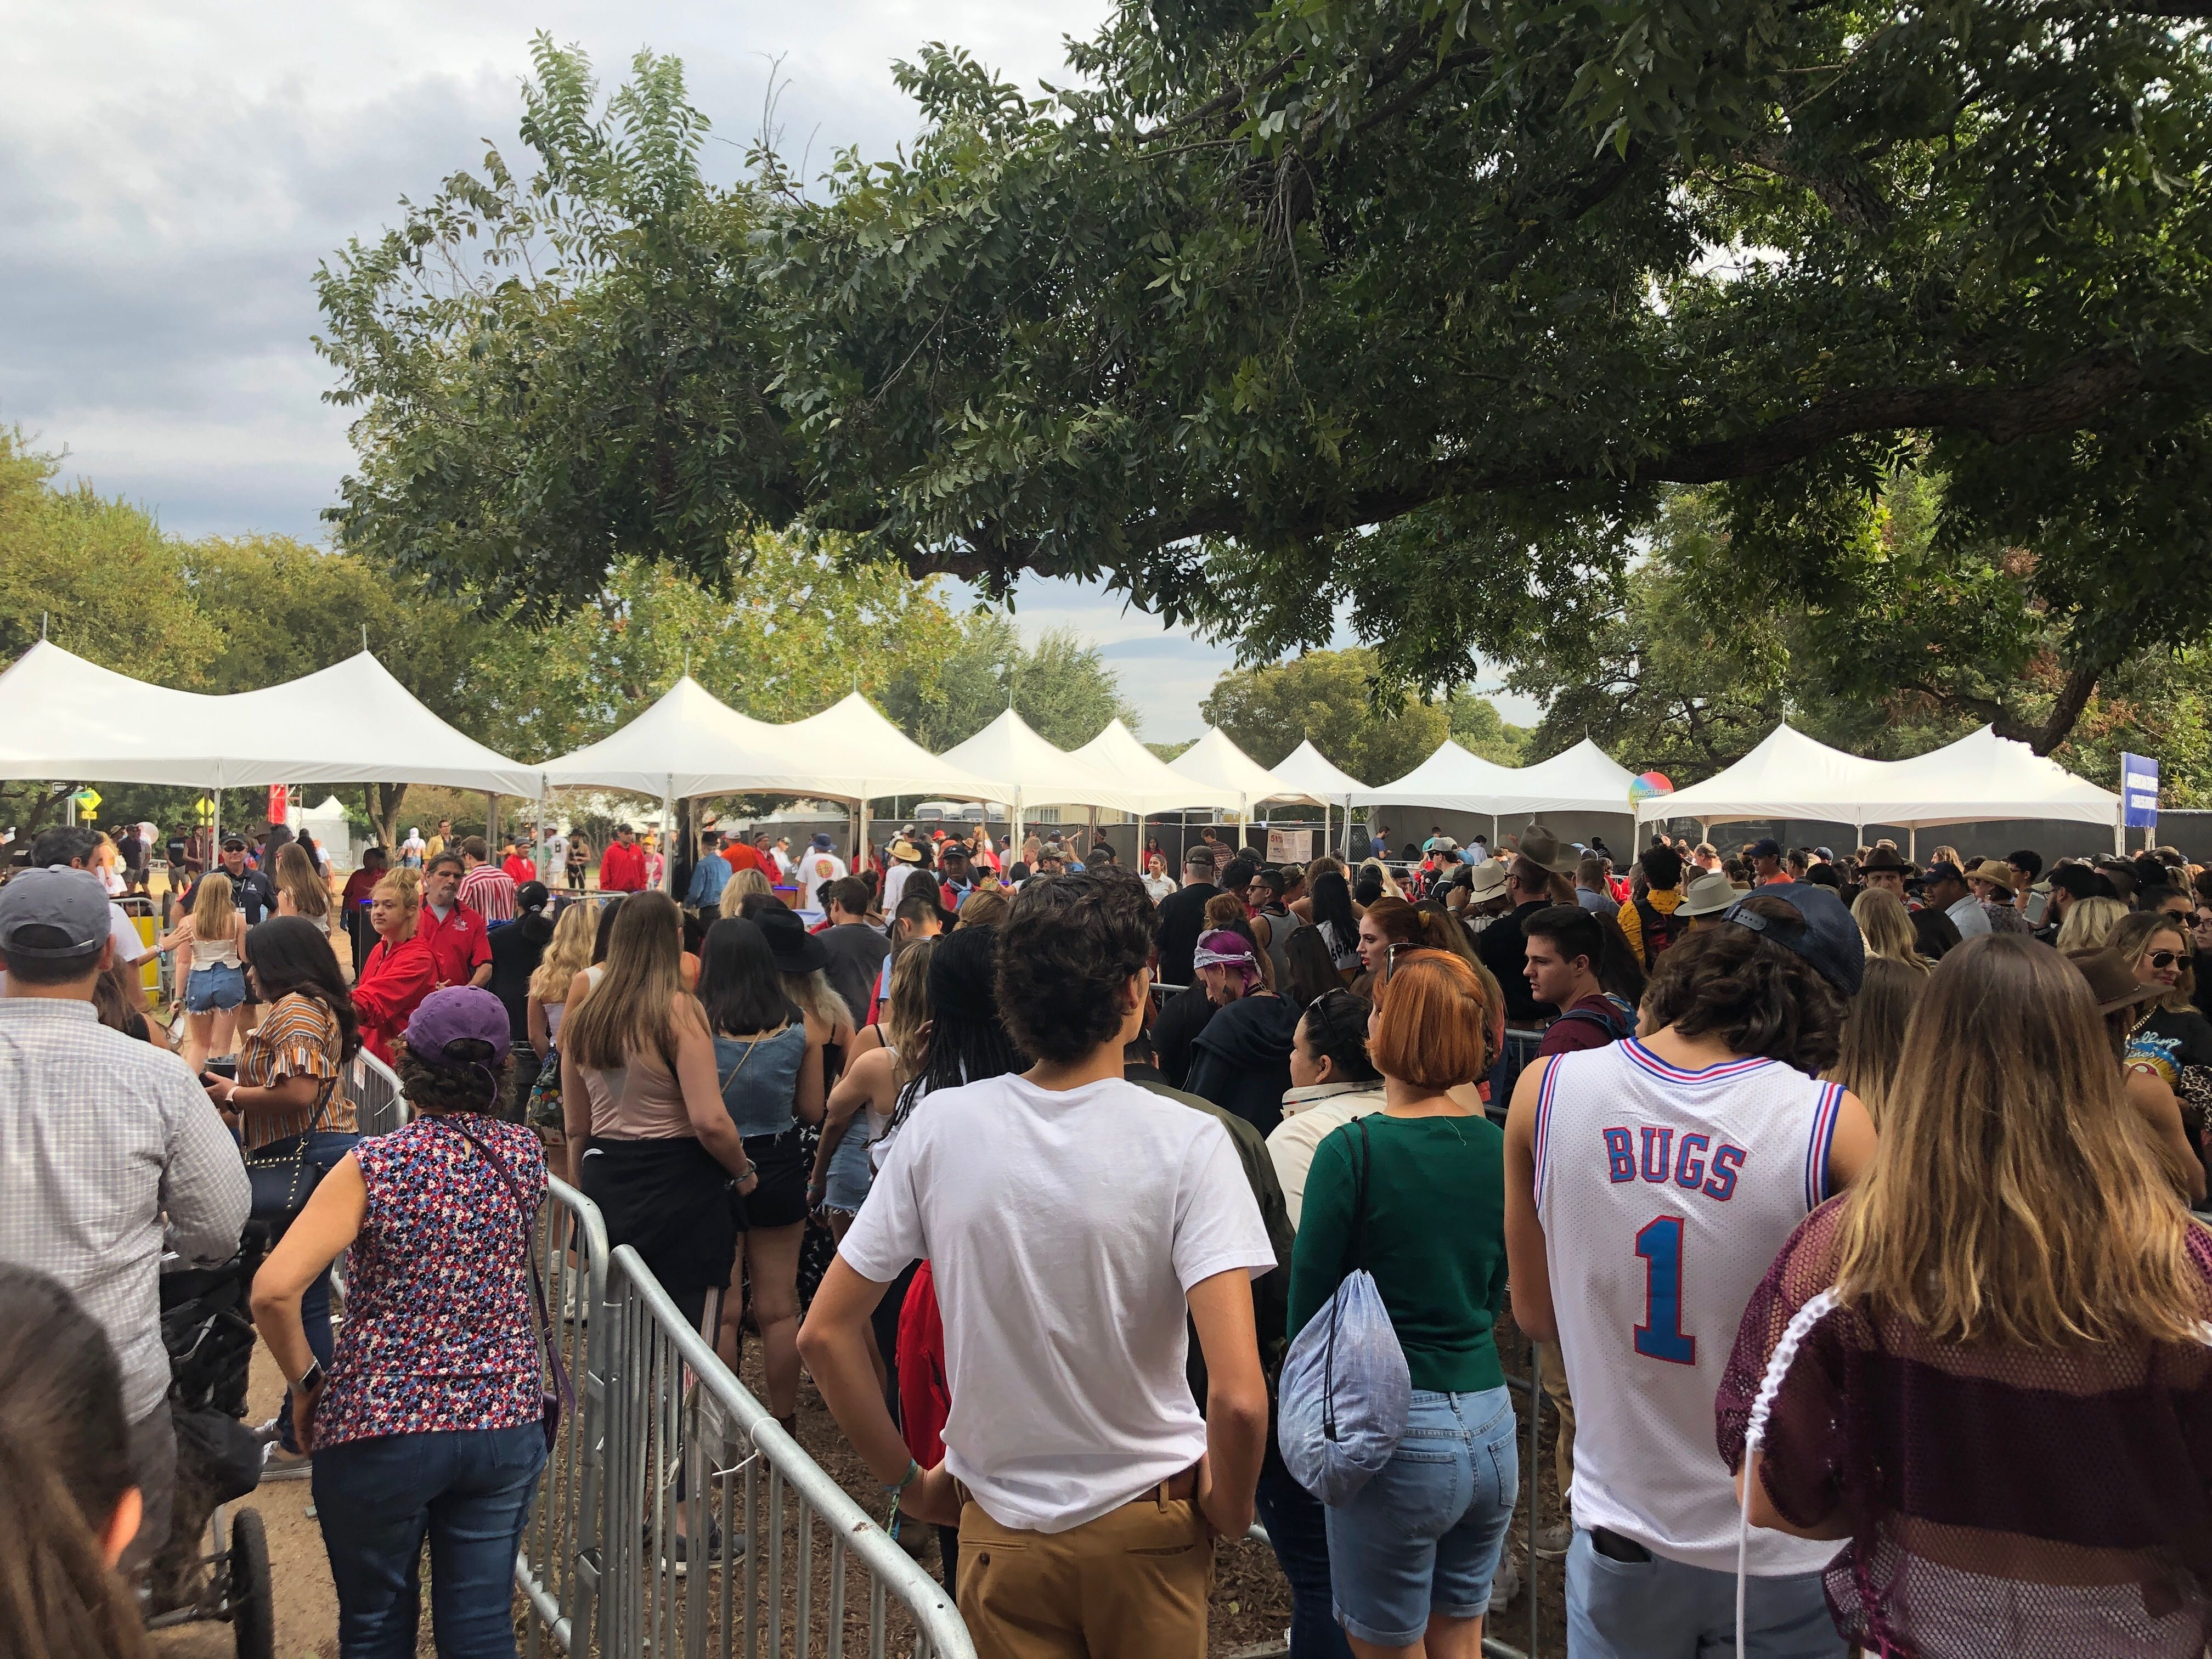 ACL 2019 security measures